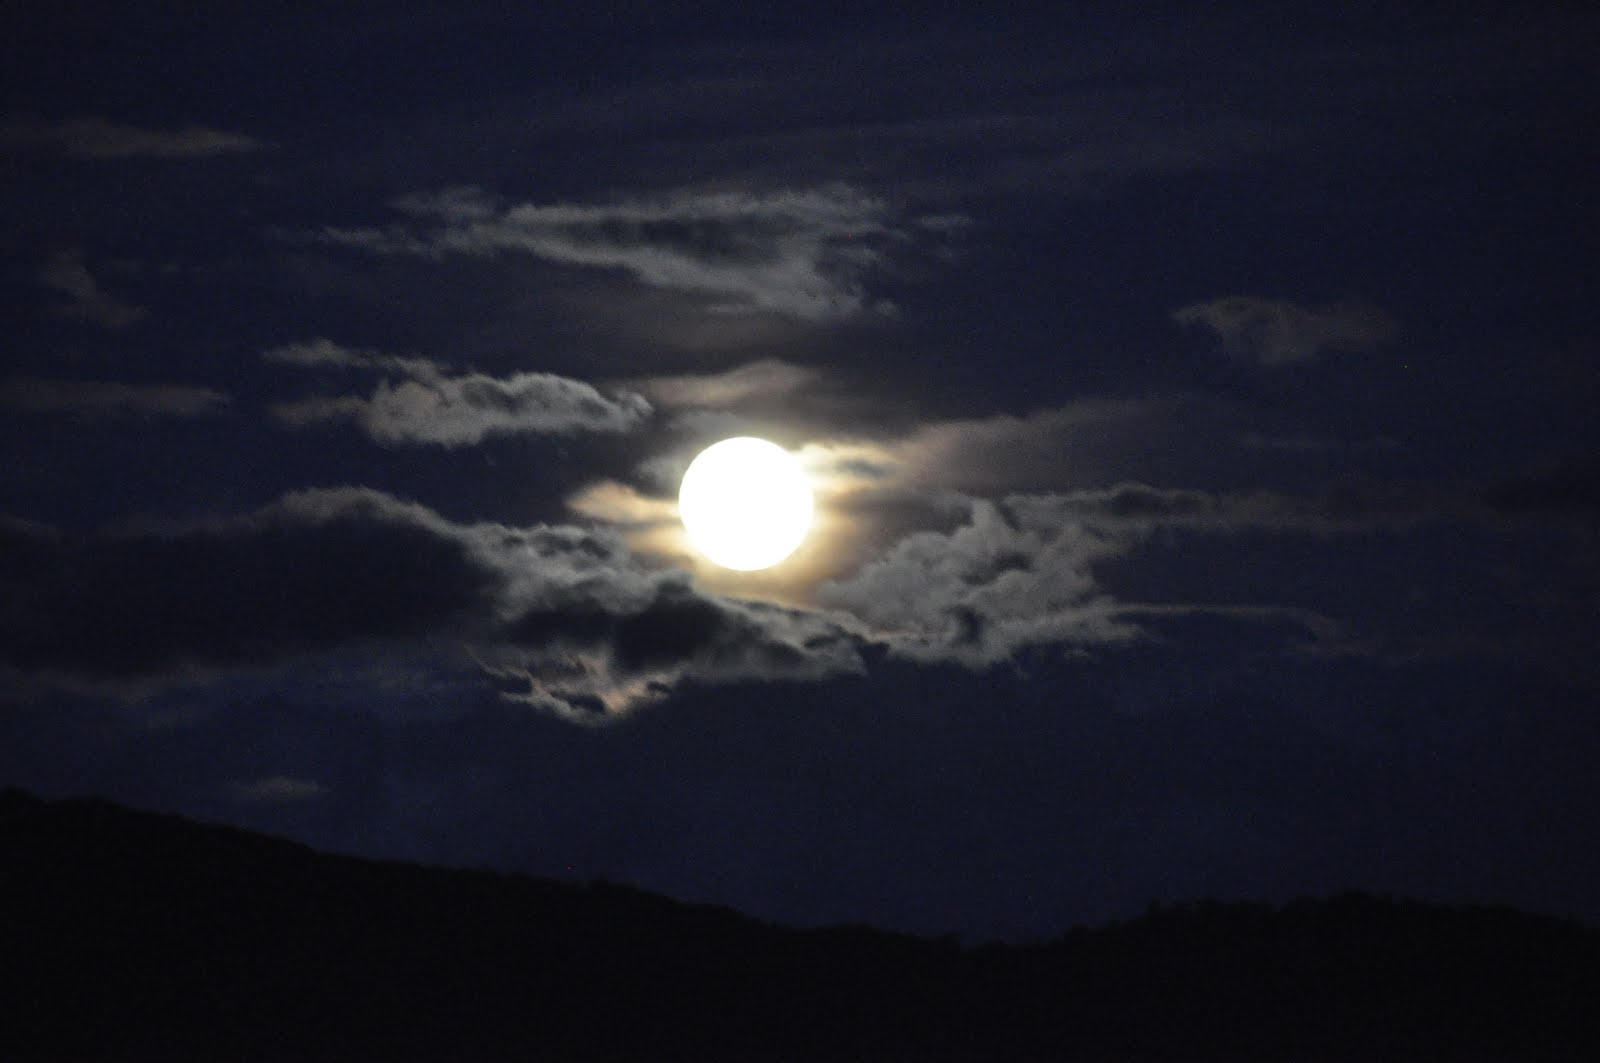 A beautiful harvest moon over a star ...   Stock Photo ...   Full Moon Reflecting Off Water